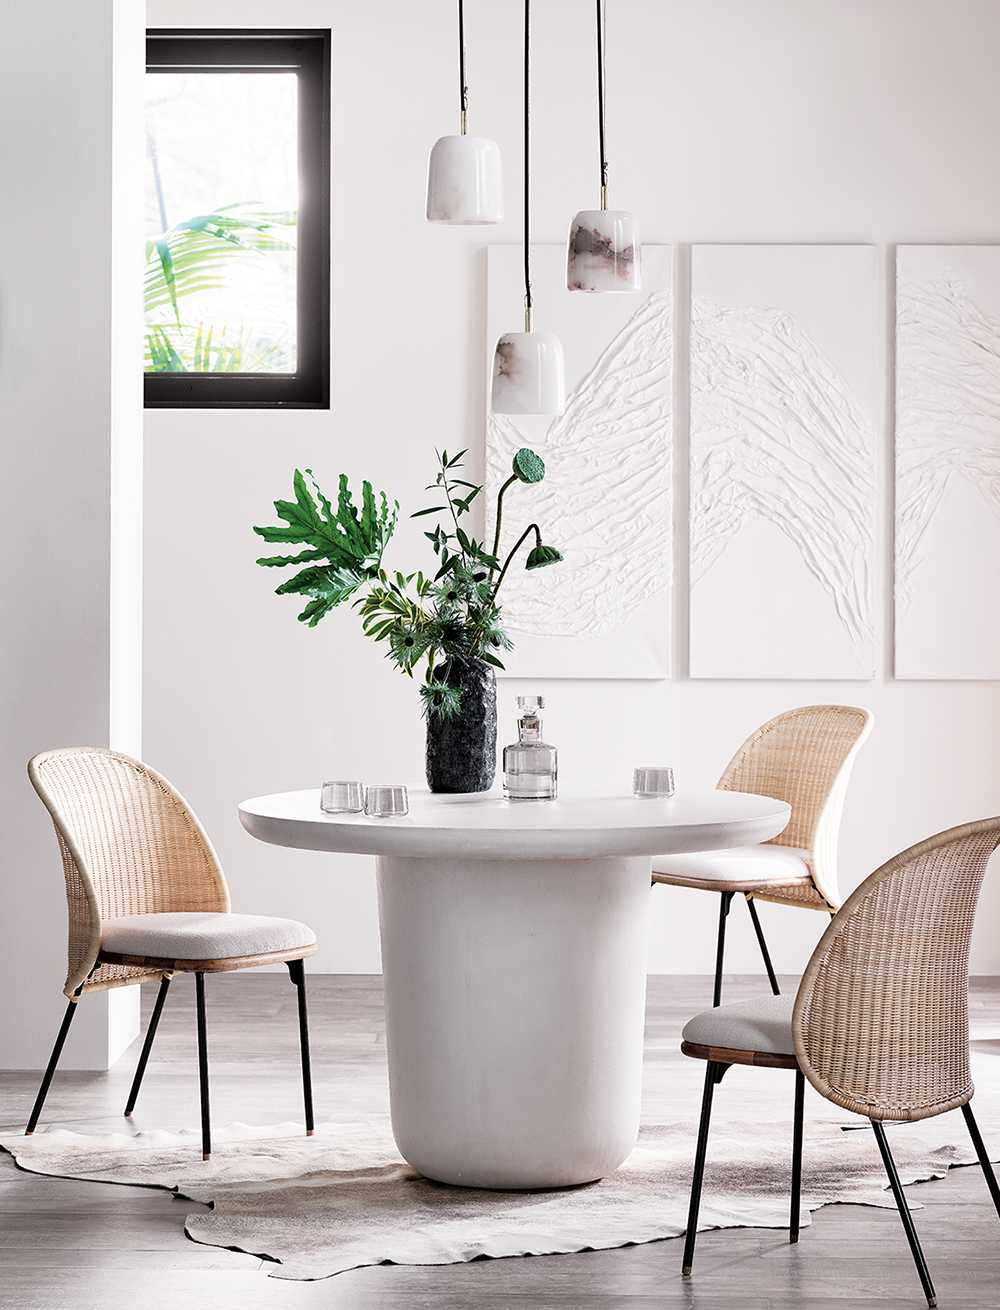 50 Strikingly Modern Dining Rooms That Inspire You To: New Modern Furniture, Home Decor & Accessories